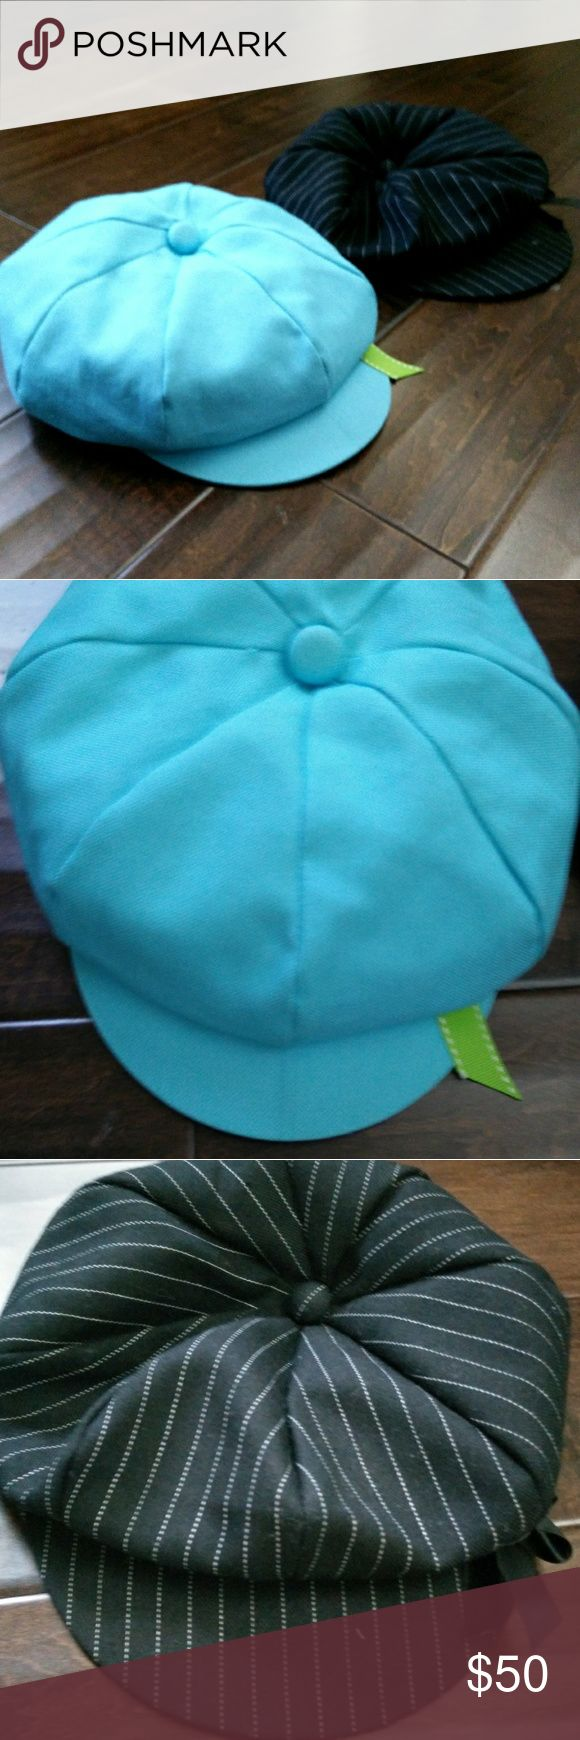 BUNDLE-English Brixton Hats *BUNDLE- 2 hats for one price* In great condition! Super cute! Dress up your outfit in a fashionable way! Accessories Hats